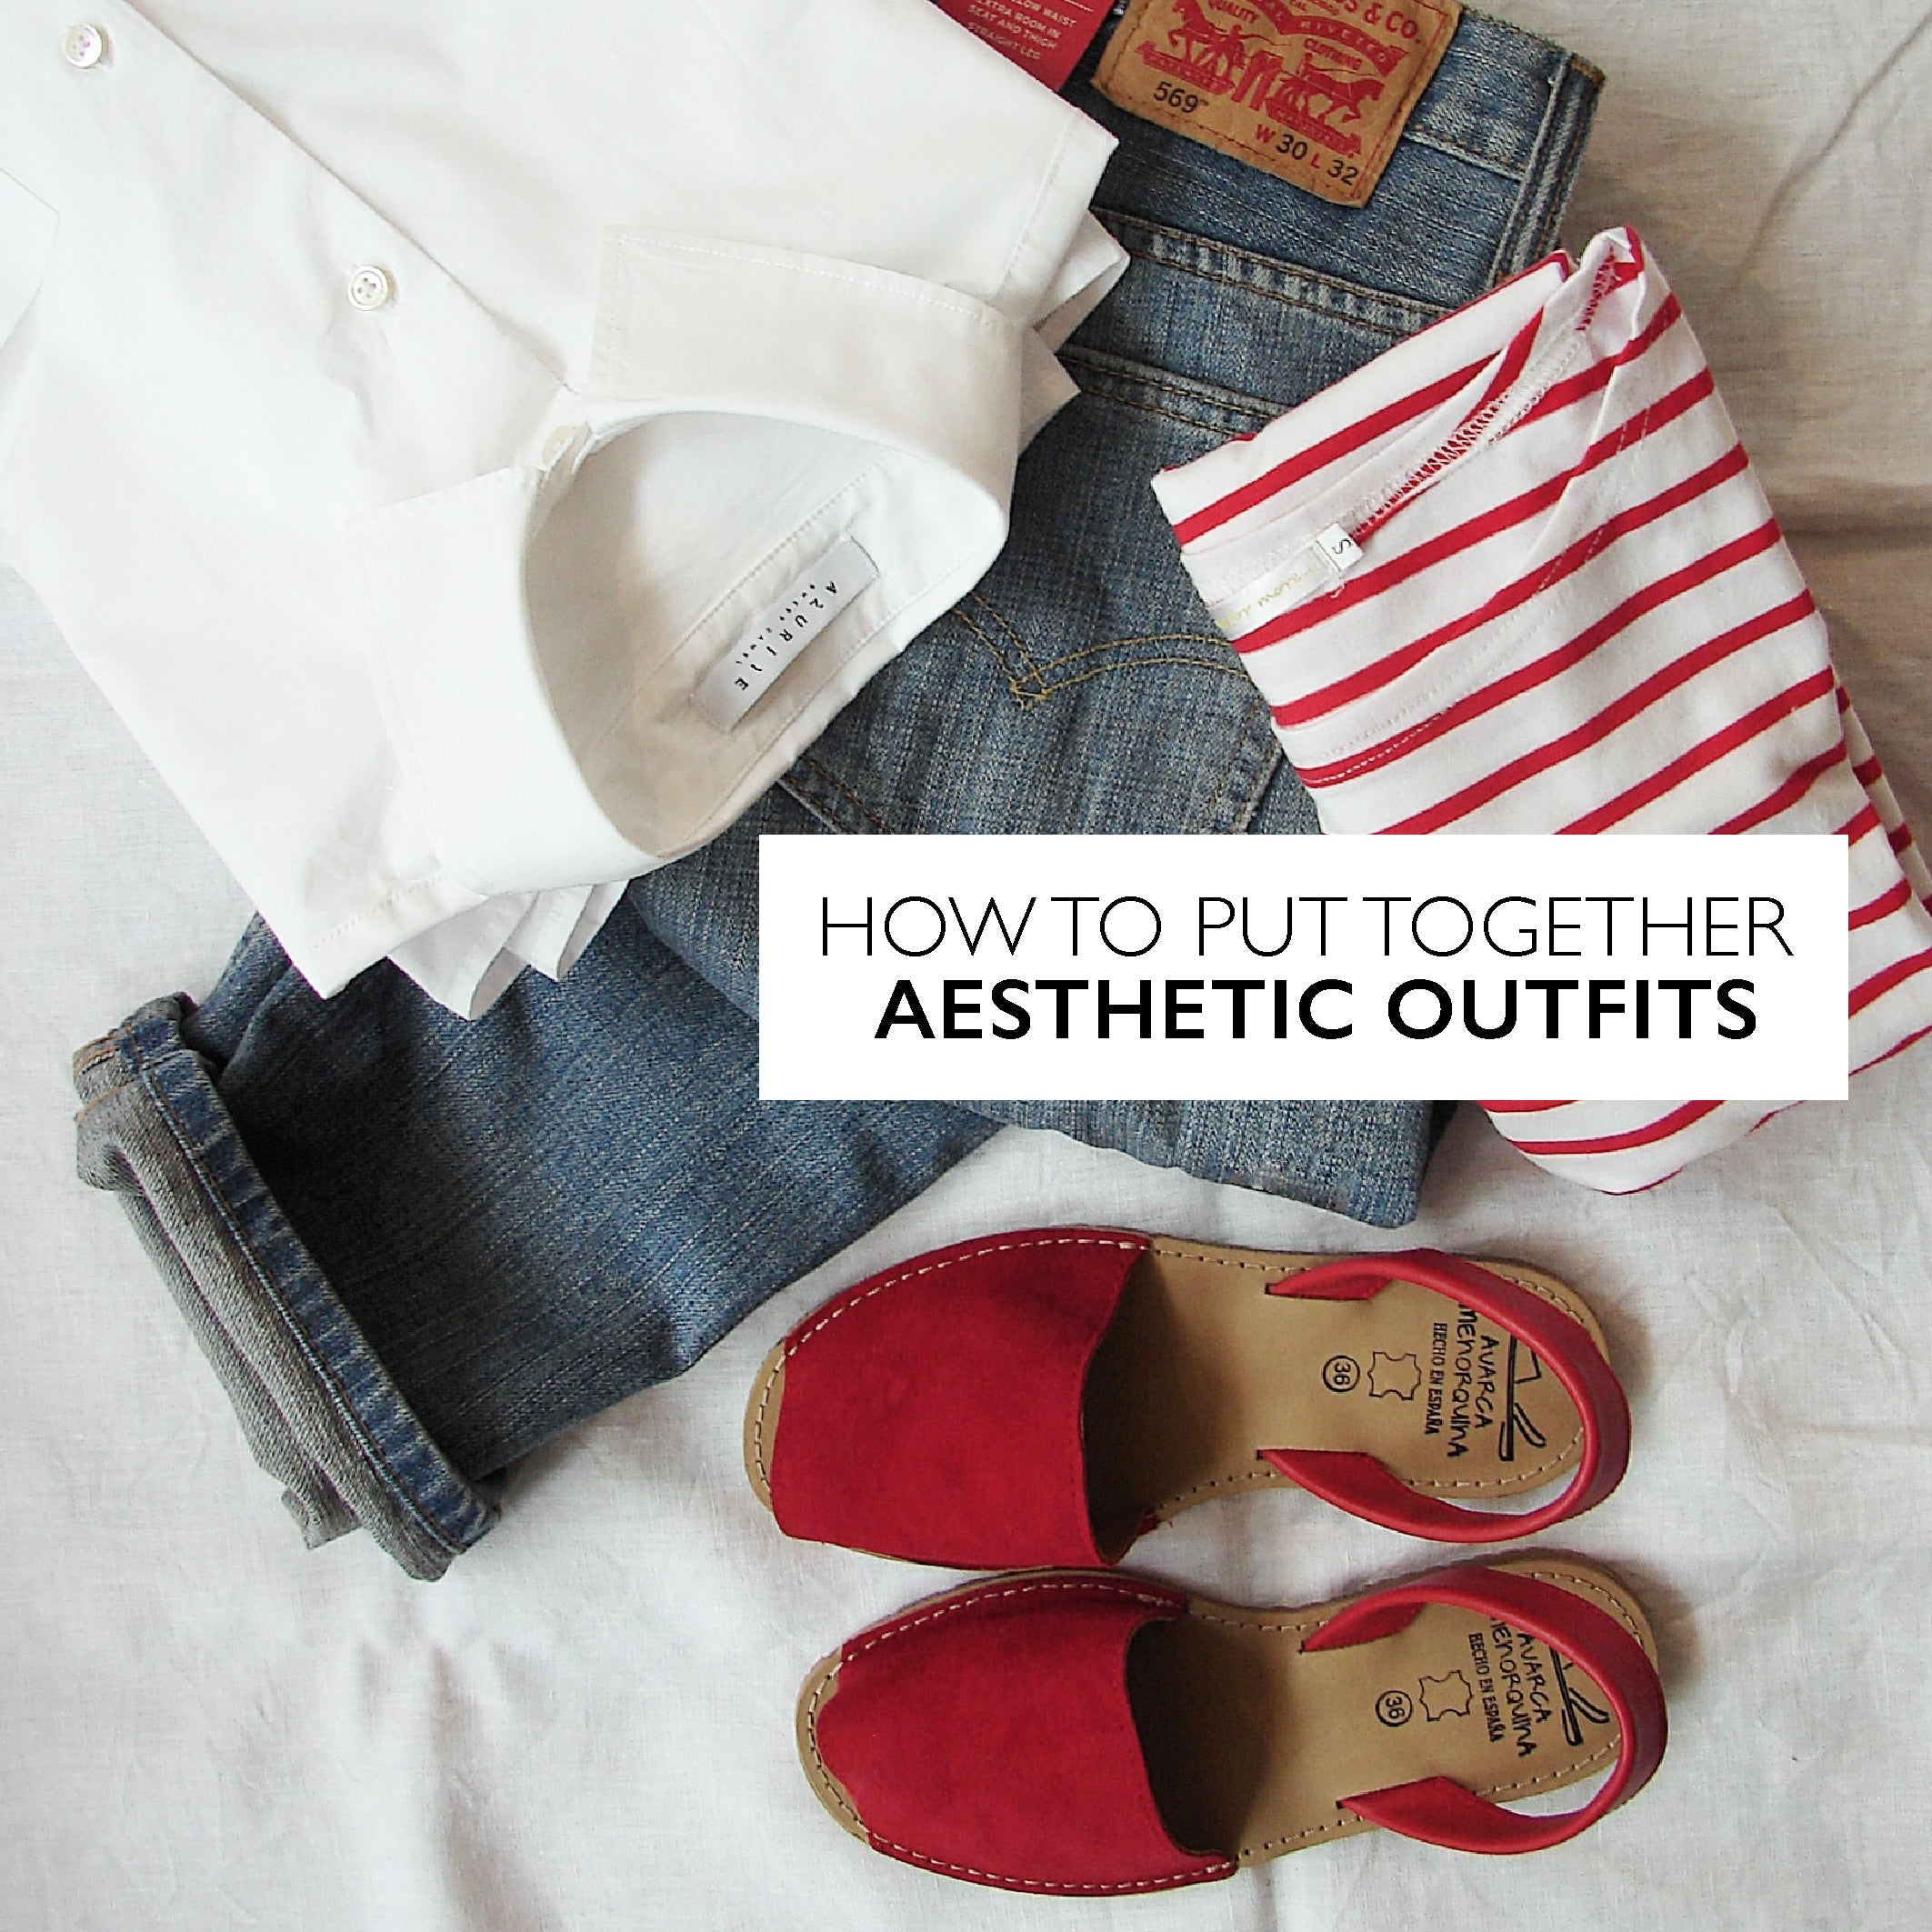 How to put together aesthetic outfits